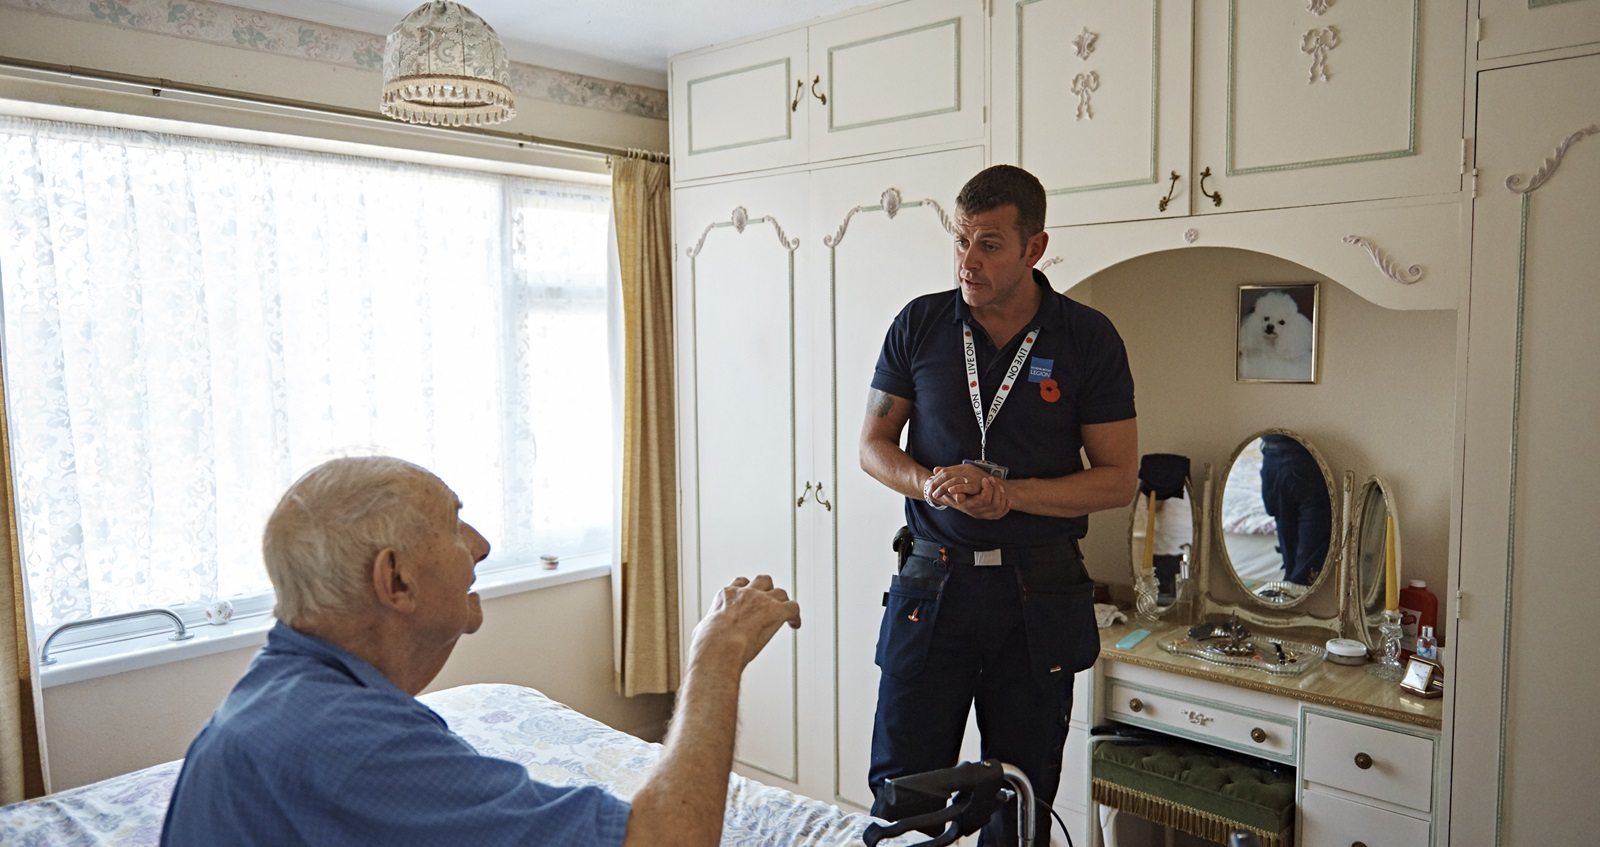 A member of Royal British Legion staff speaking to a veteran